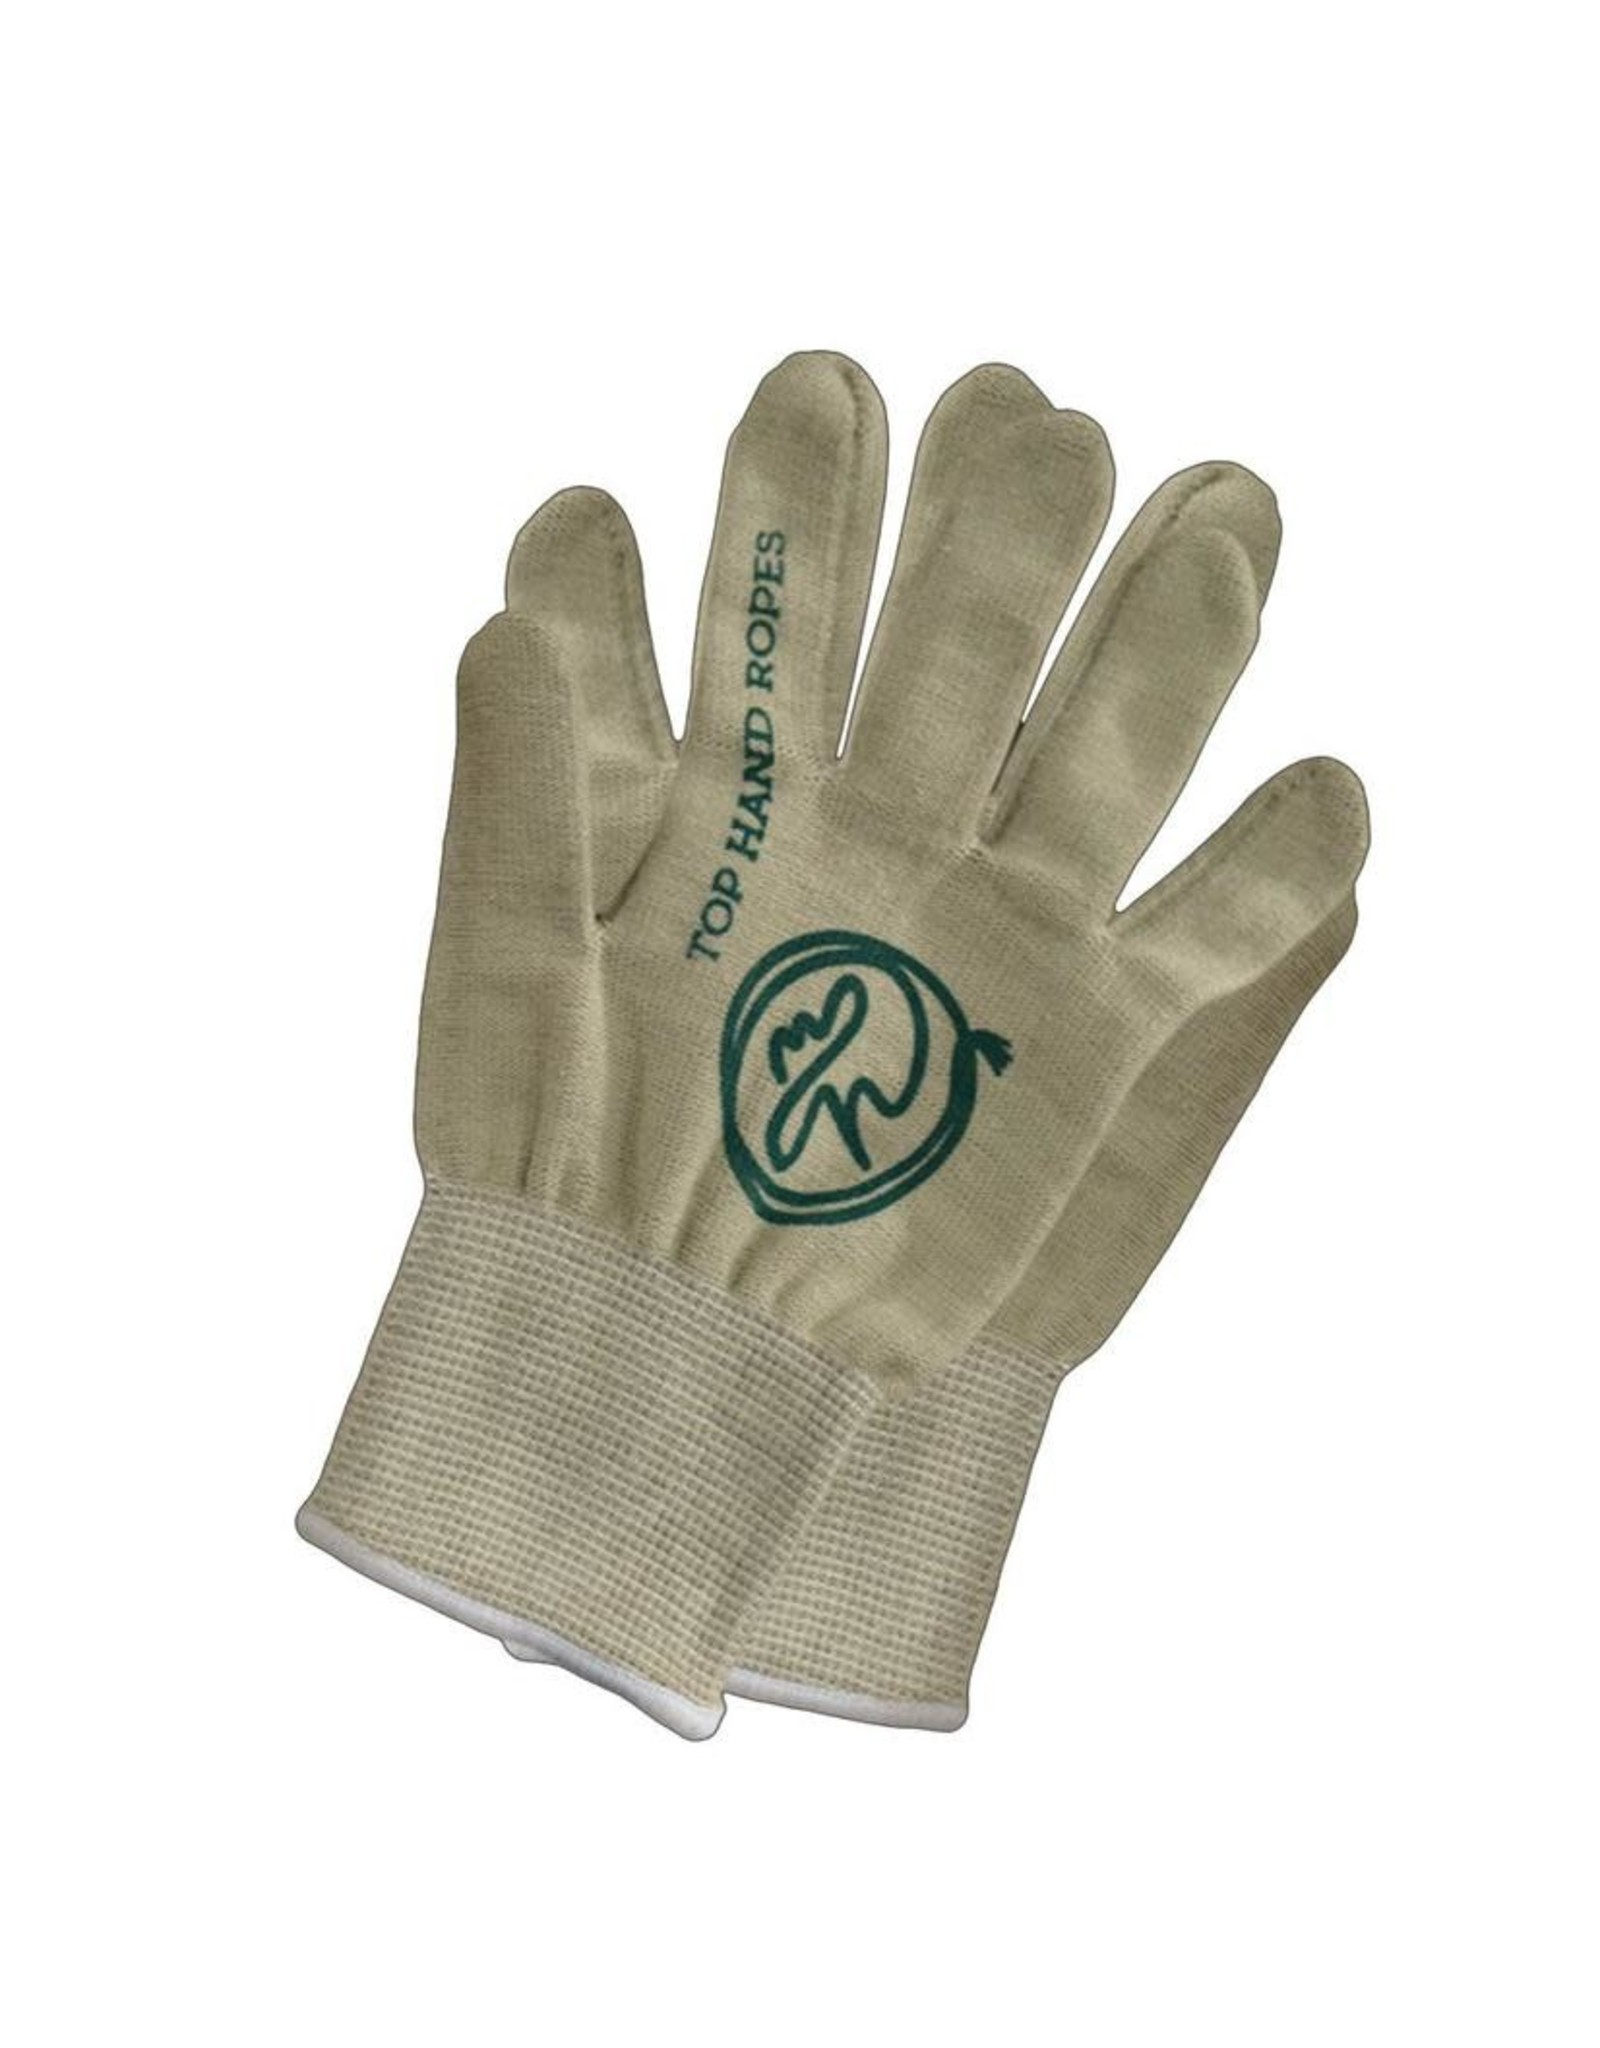 Top Hand Roping Gloves Small